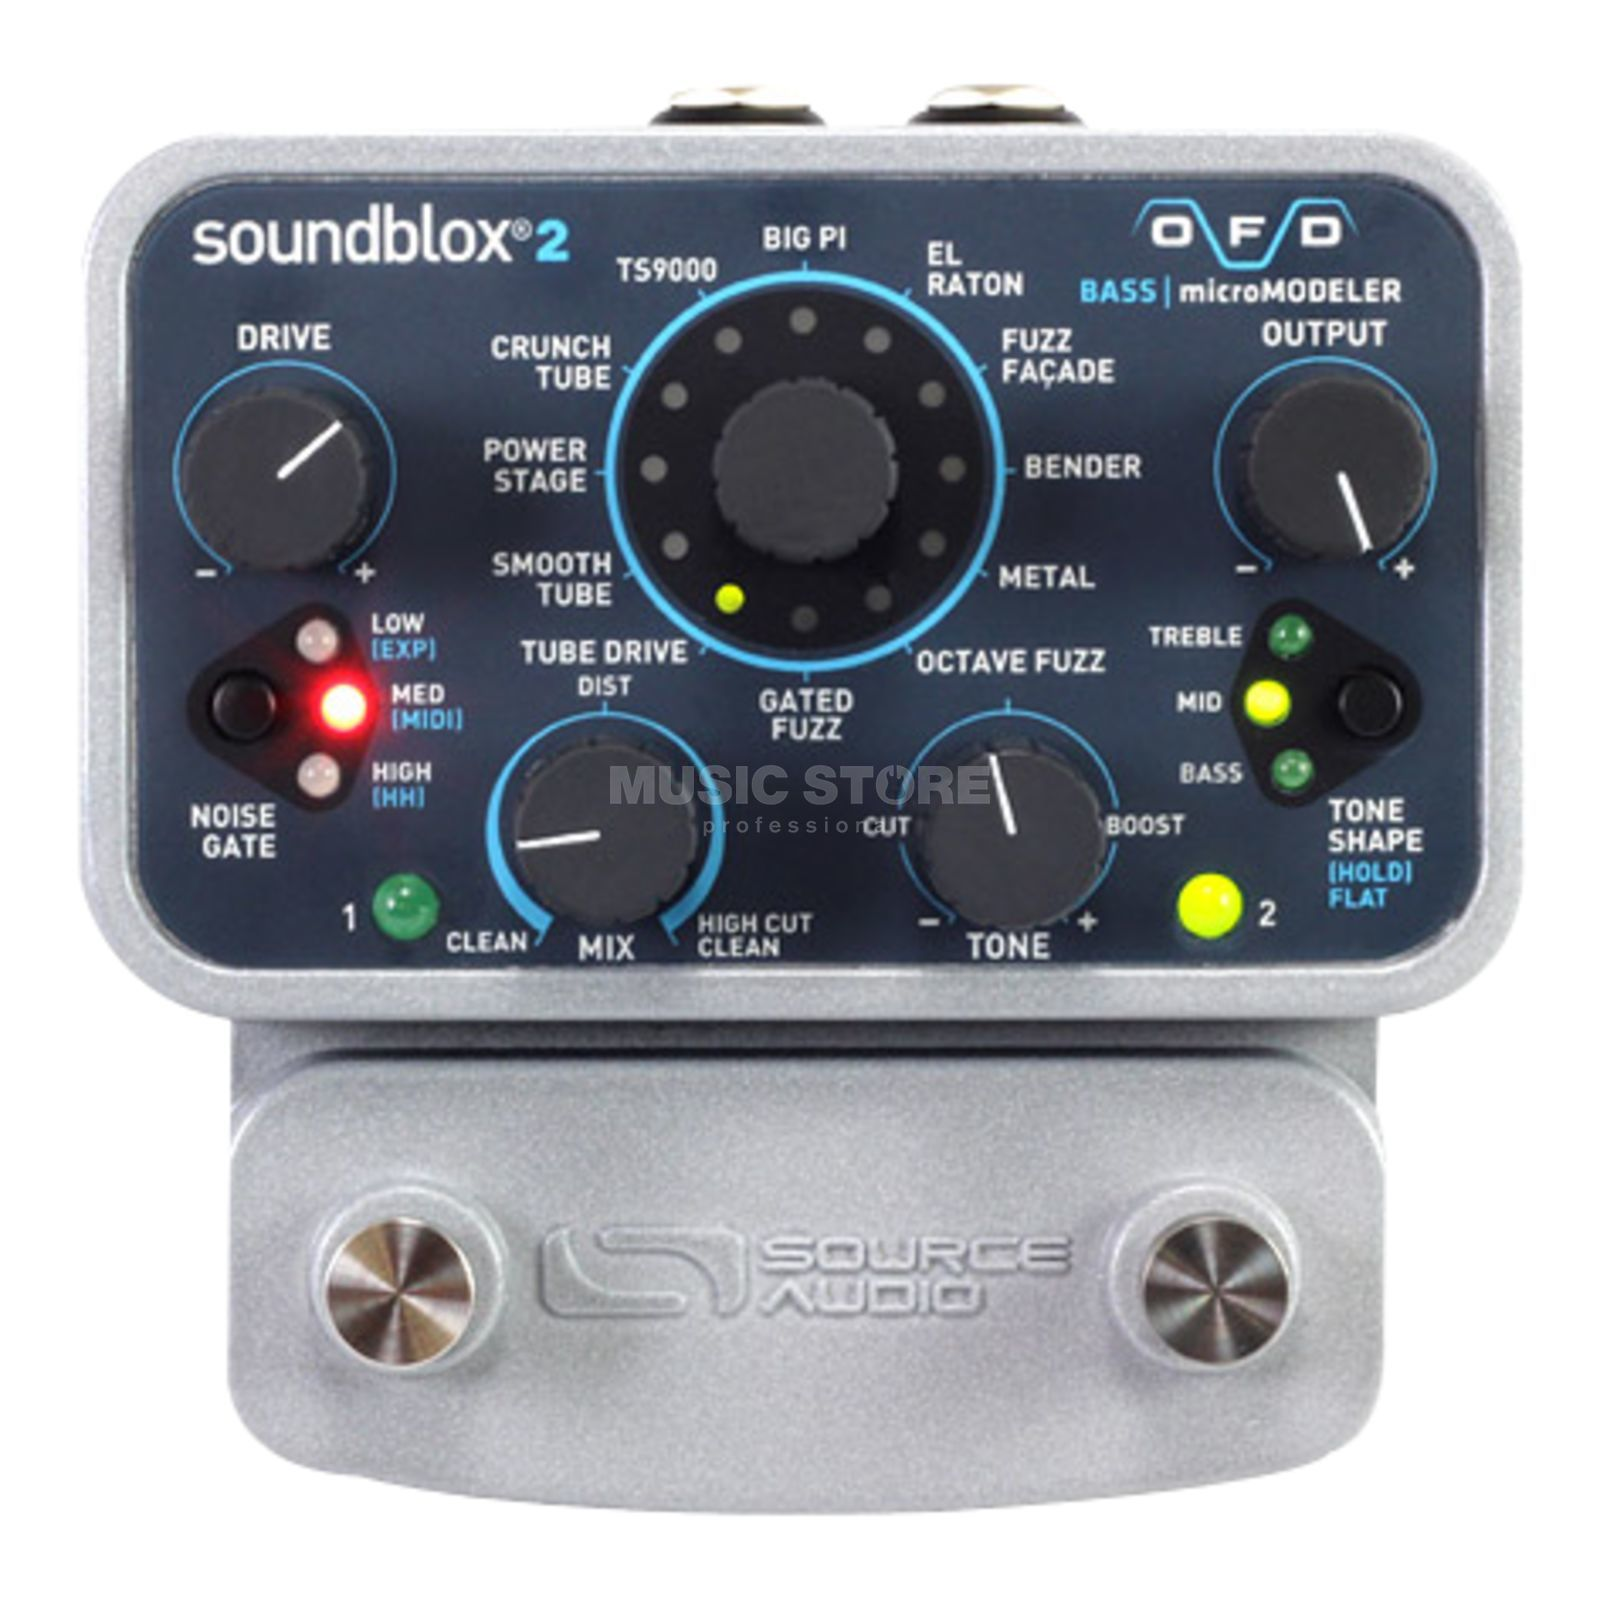 Source Audio Soundblox 2 OFD microModeler  Productafbeelding